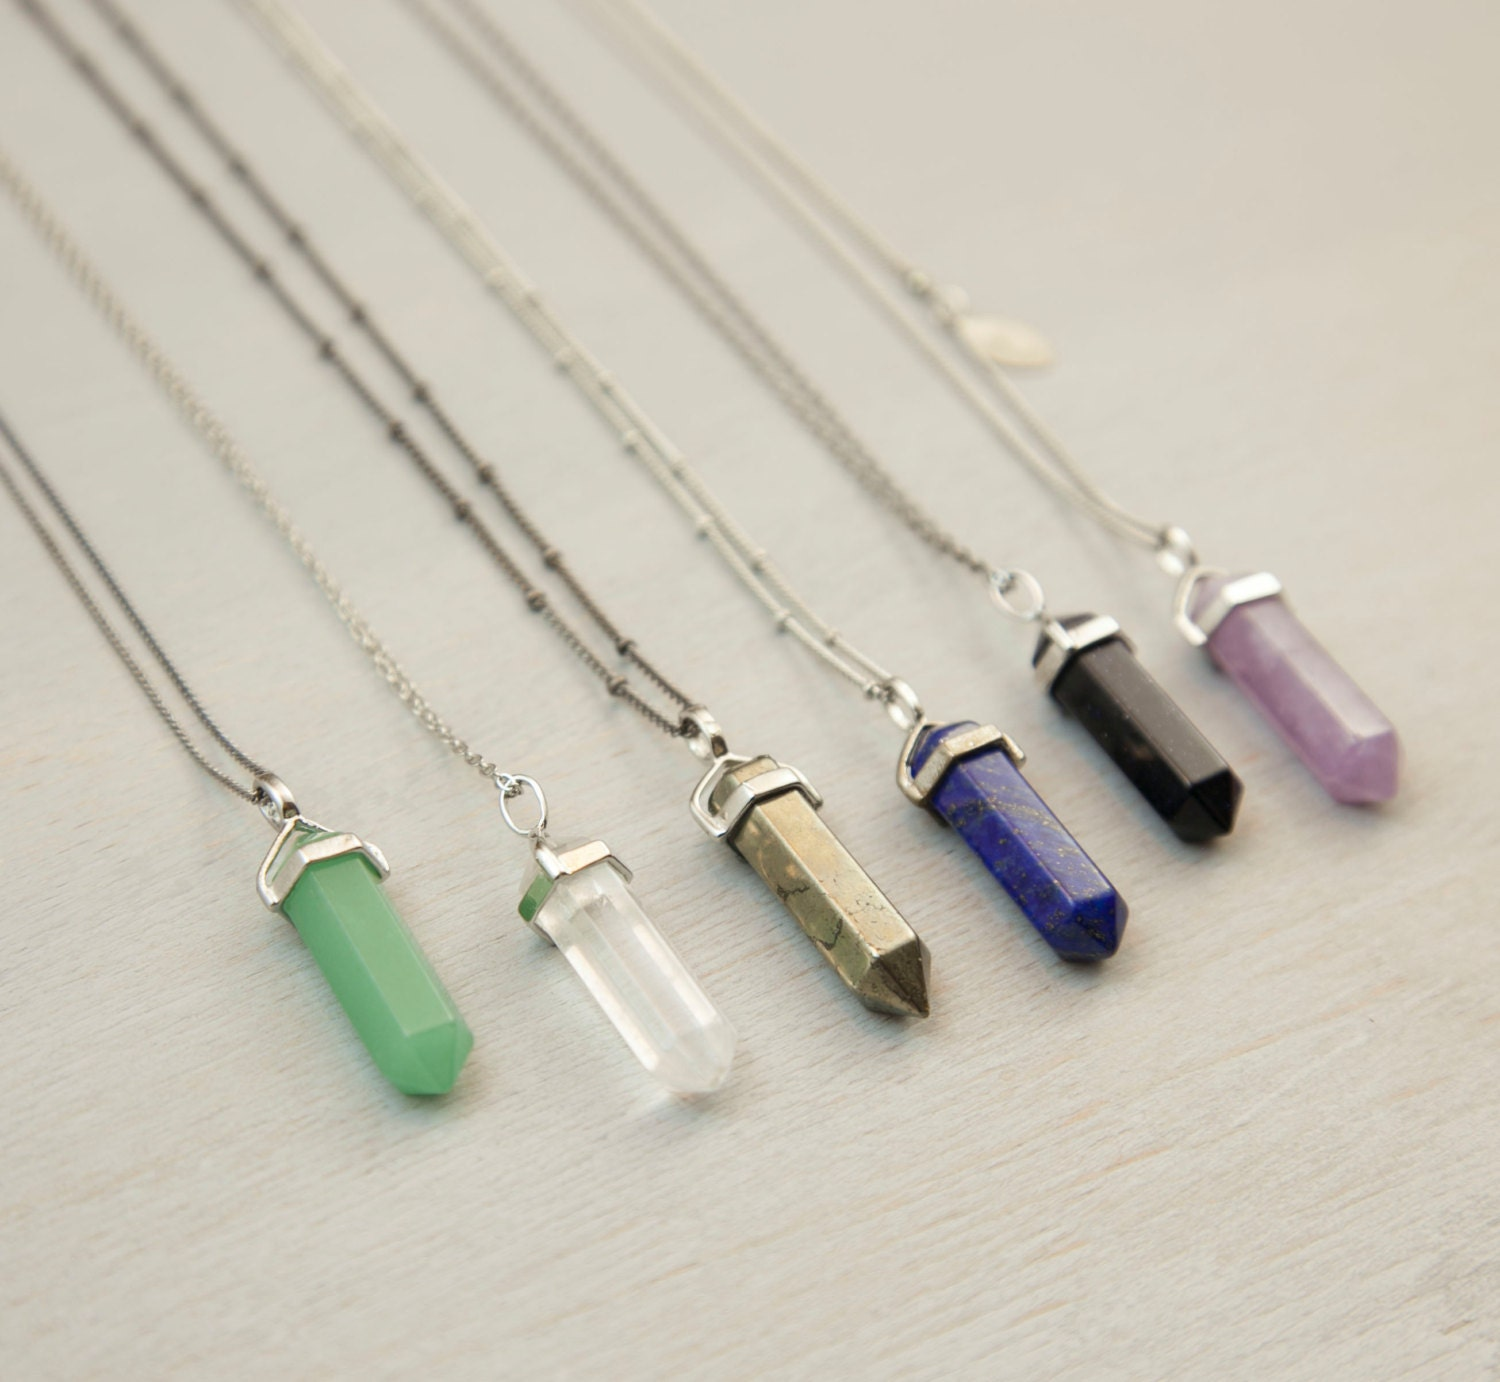 chain necklace transparent stone crystal color gold necklaces luxury multicolor colorful pendants natural rainbow creative bi pendant